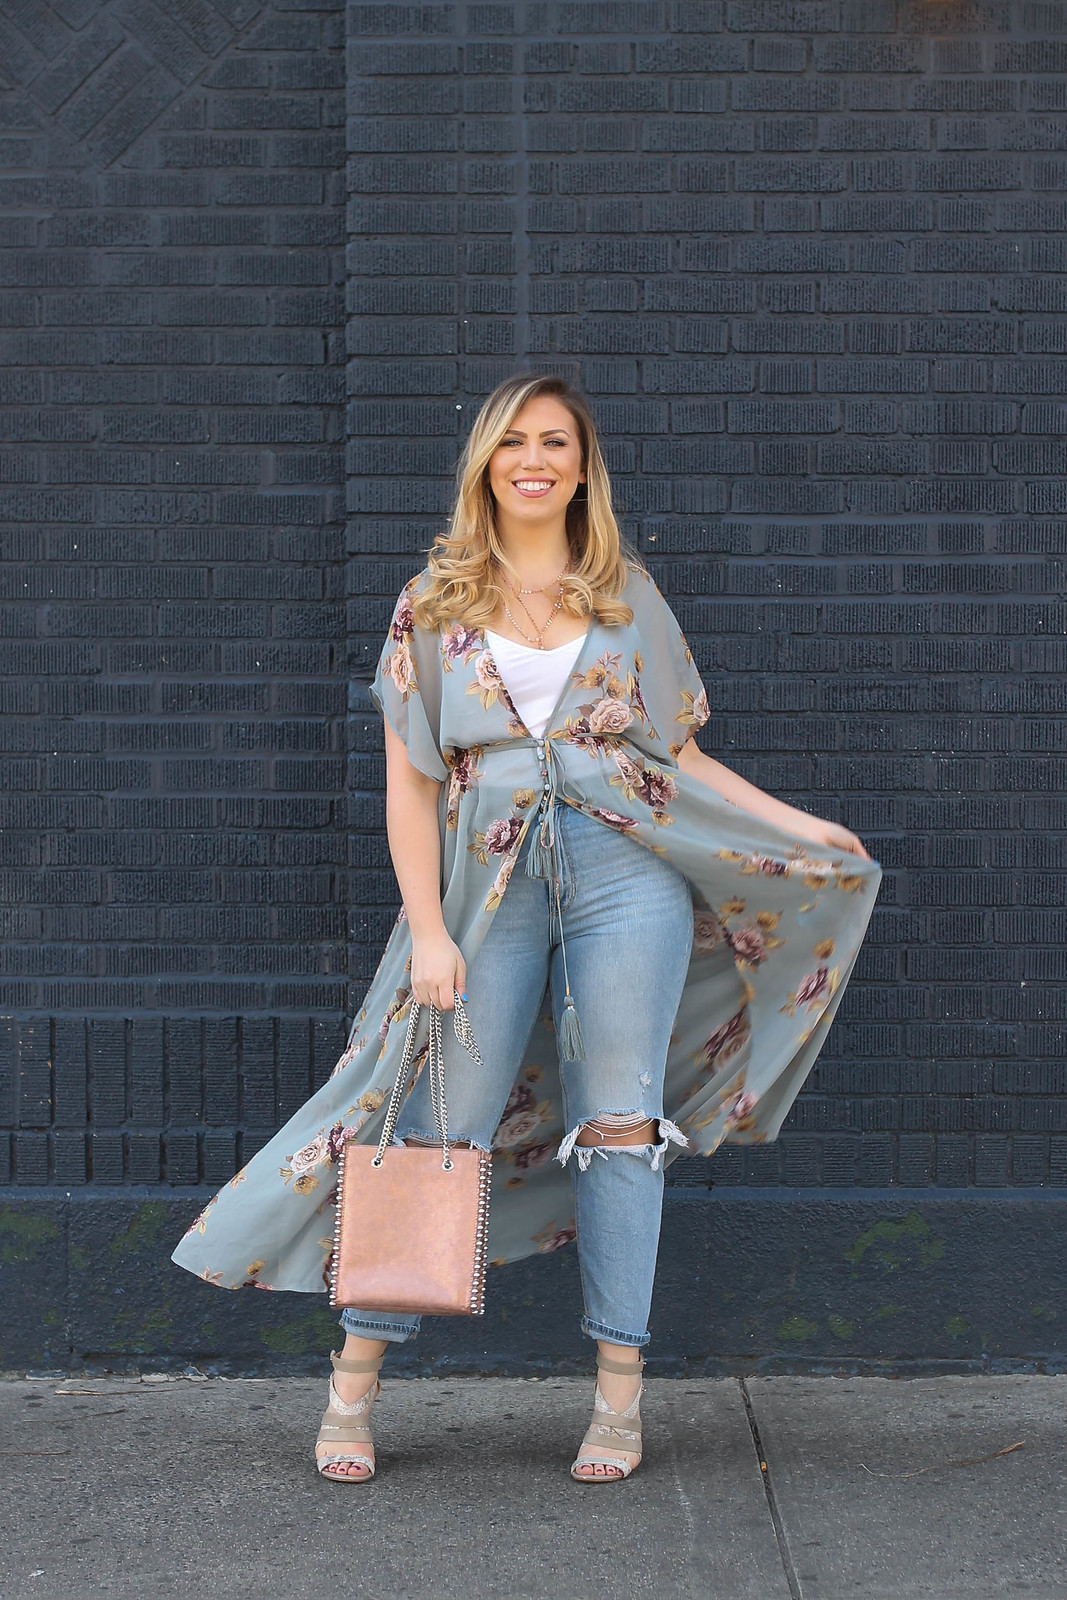 The Best Mom Jeans for Pear Shape Mid Size Bodies | Mom Jeans Outfit Summer | How to Style Mom Jeans | Spring Outfits | Mom Jeans Shopping Guide